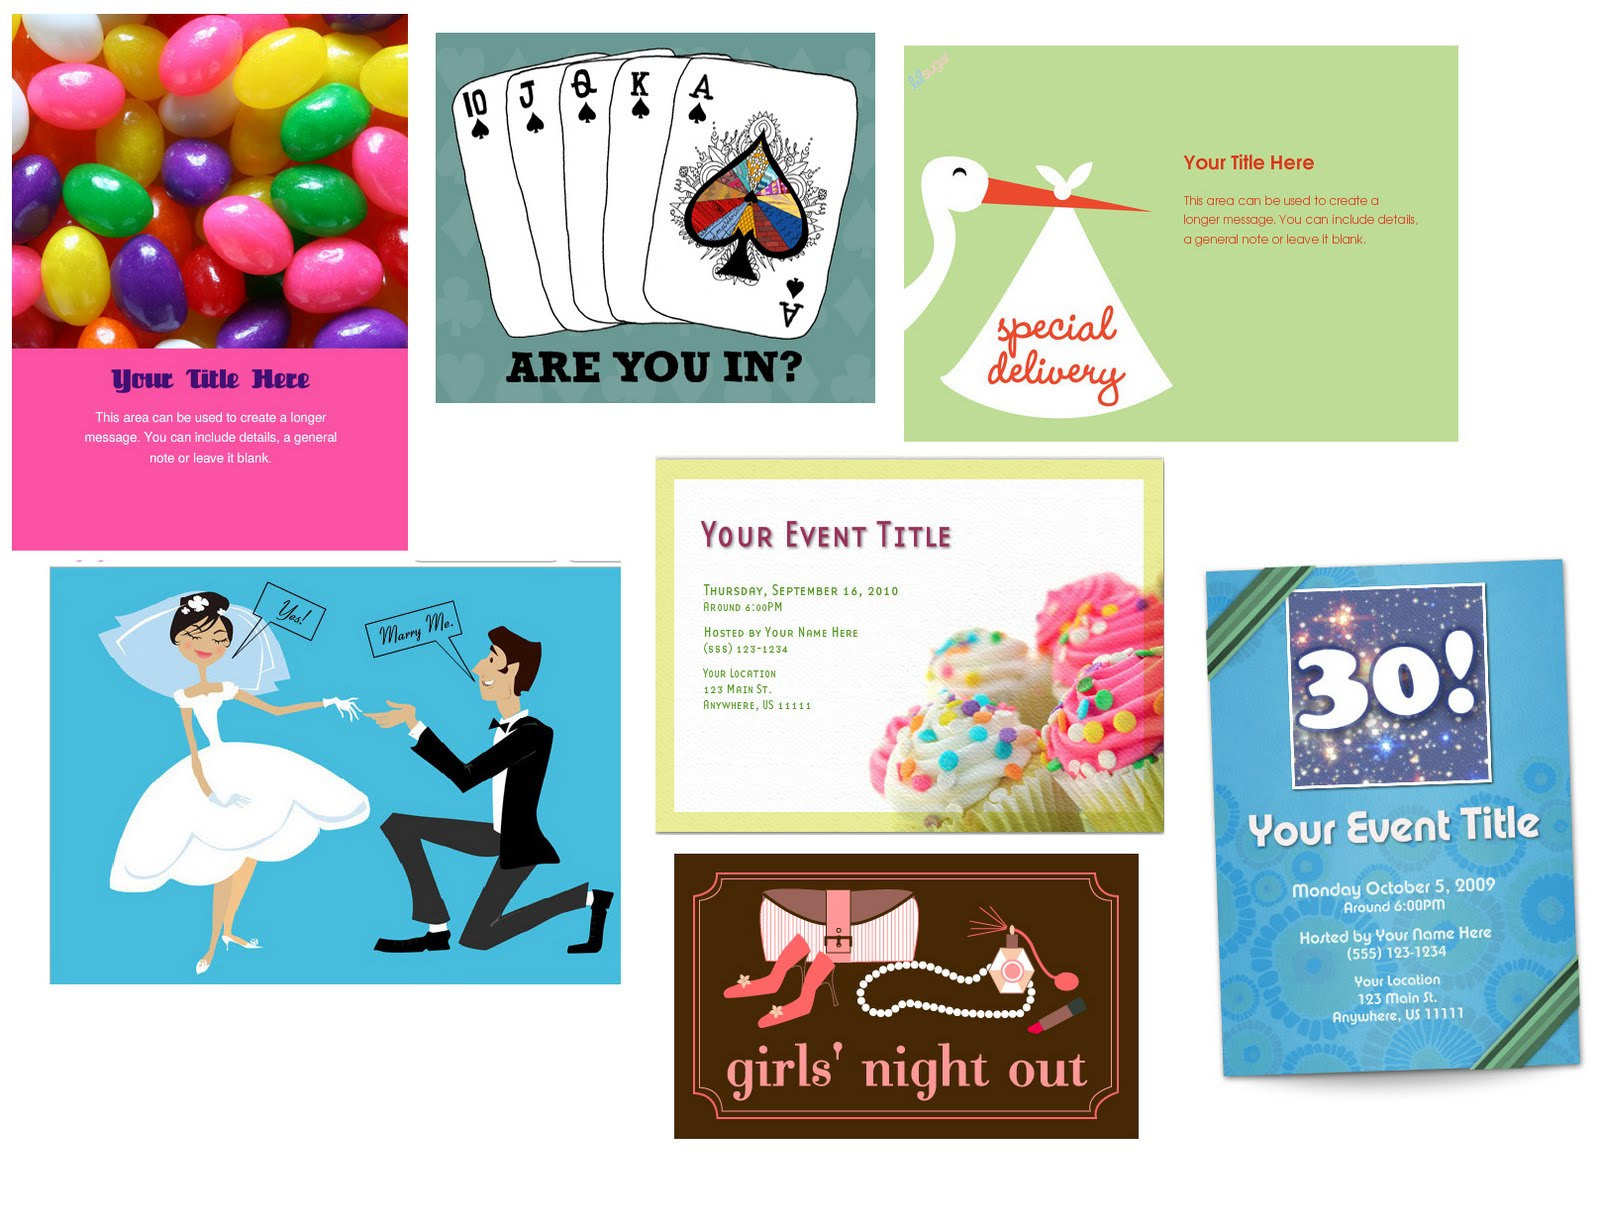 15 minute party planner electronic invites save time and money